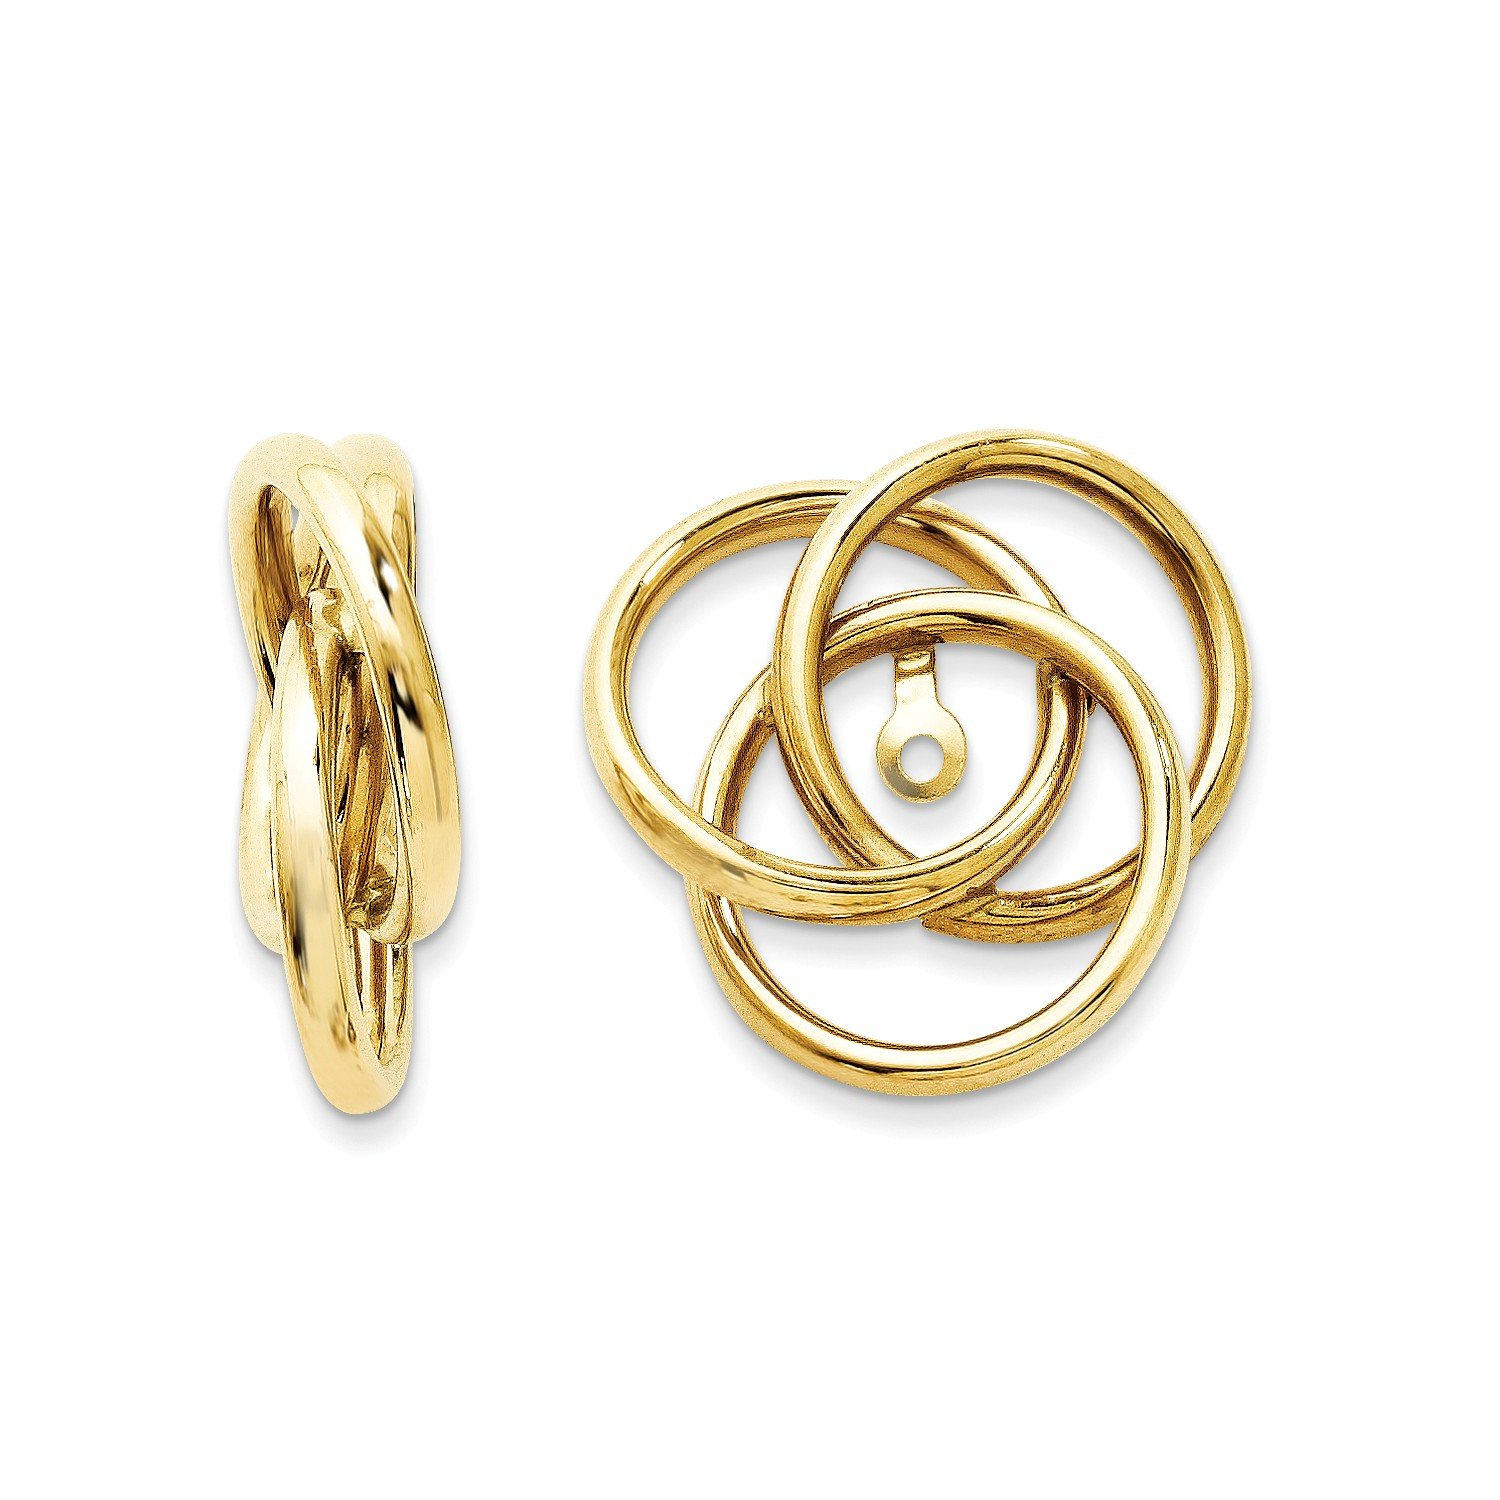 Roy Rose Jewelry 14K Yellow Gold Polished Love Knot Earring Jackets 16mm length